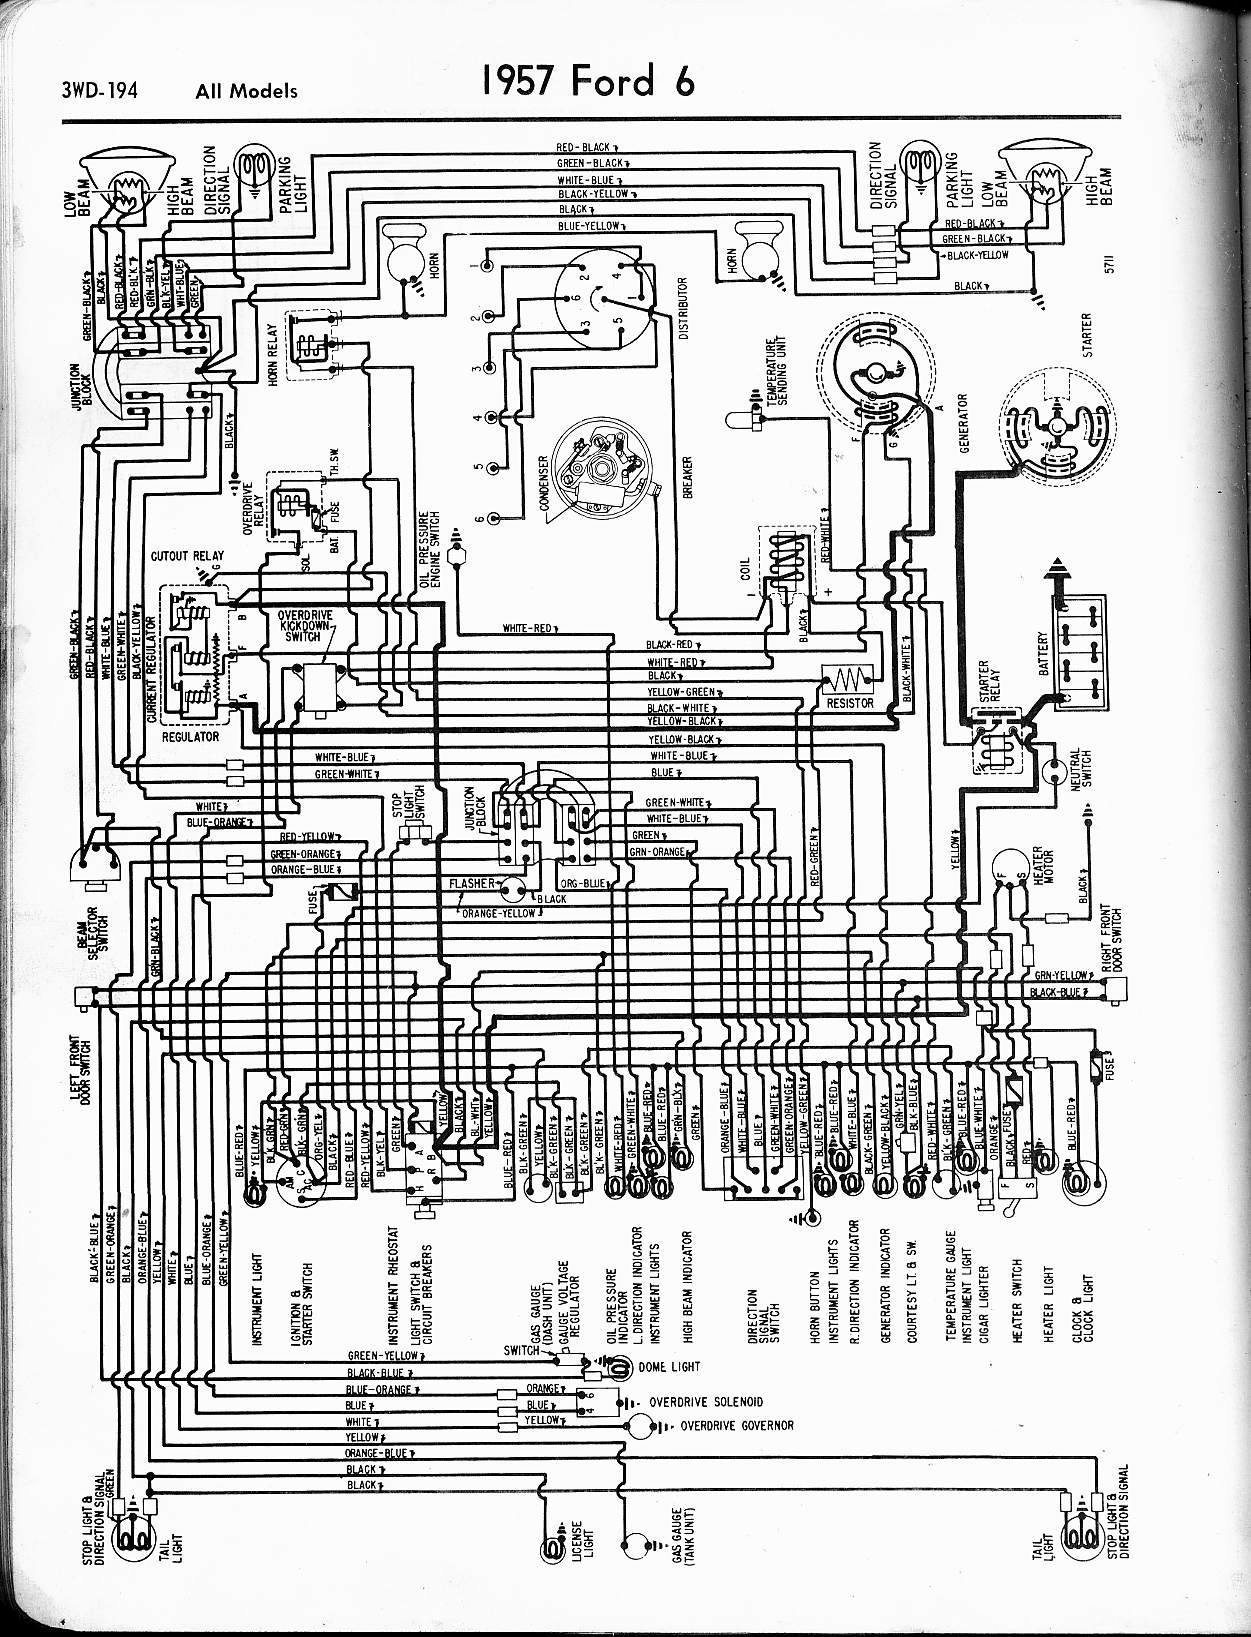 1950 ford wiring diagram schematic | wiring diagram  wiring diagram - autoscout24